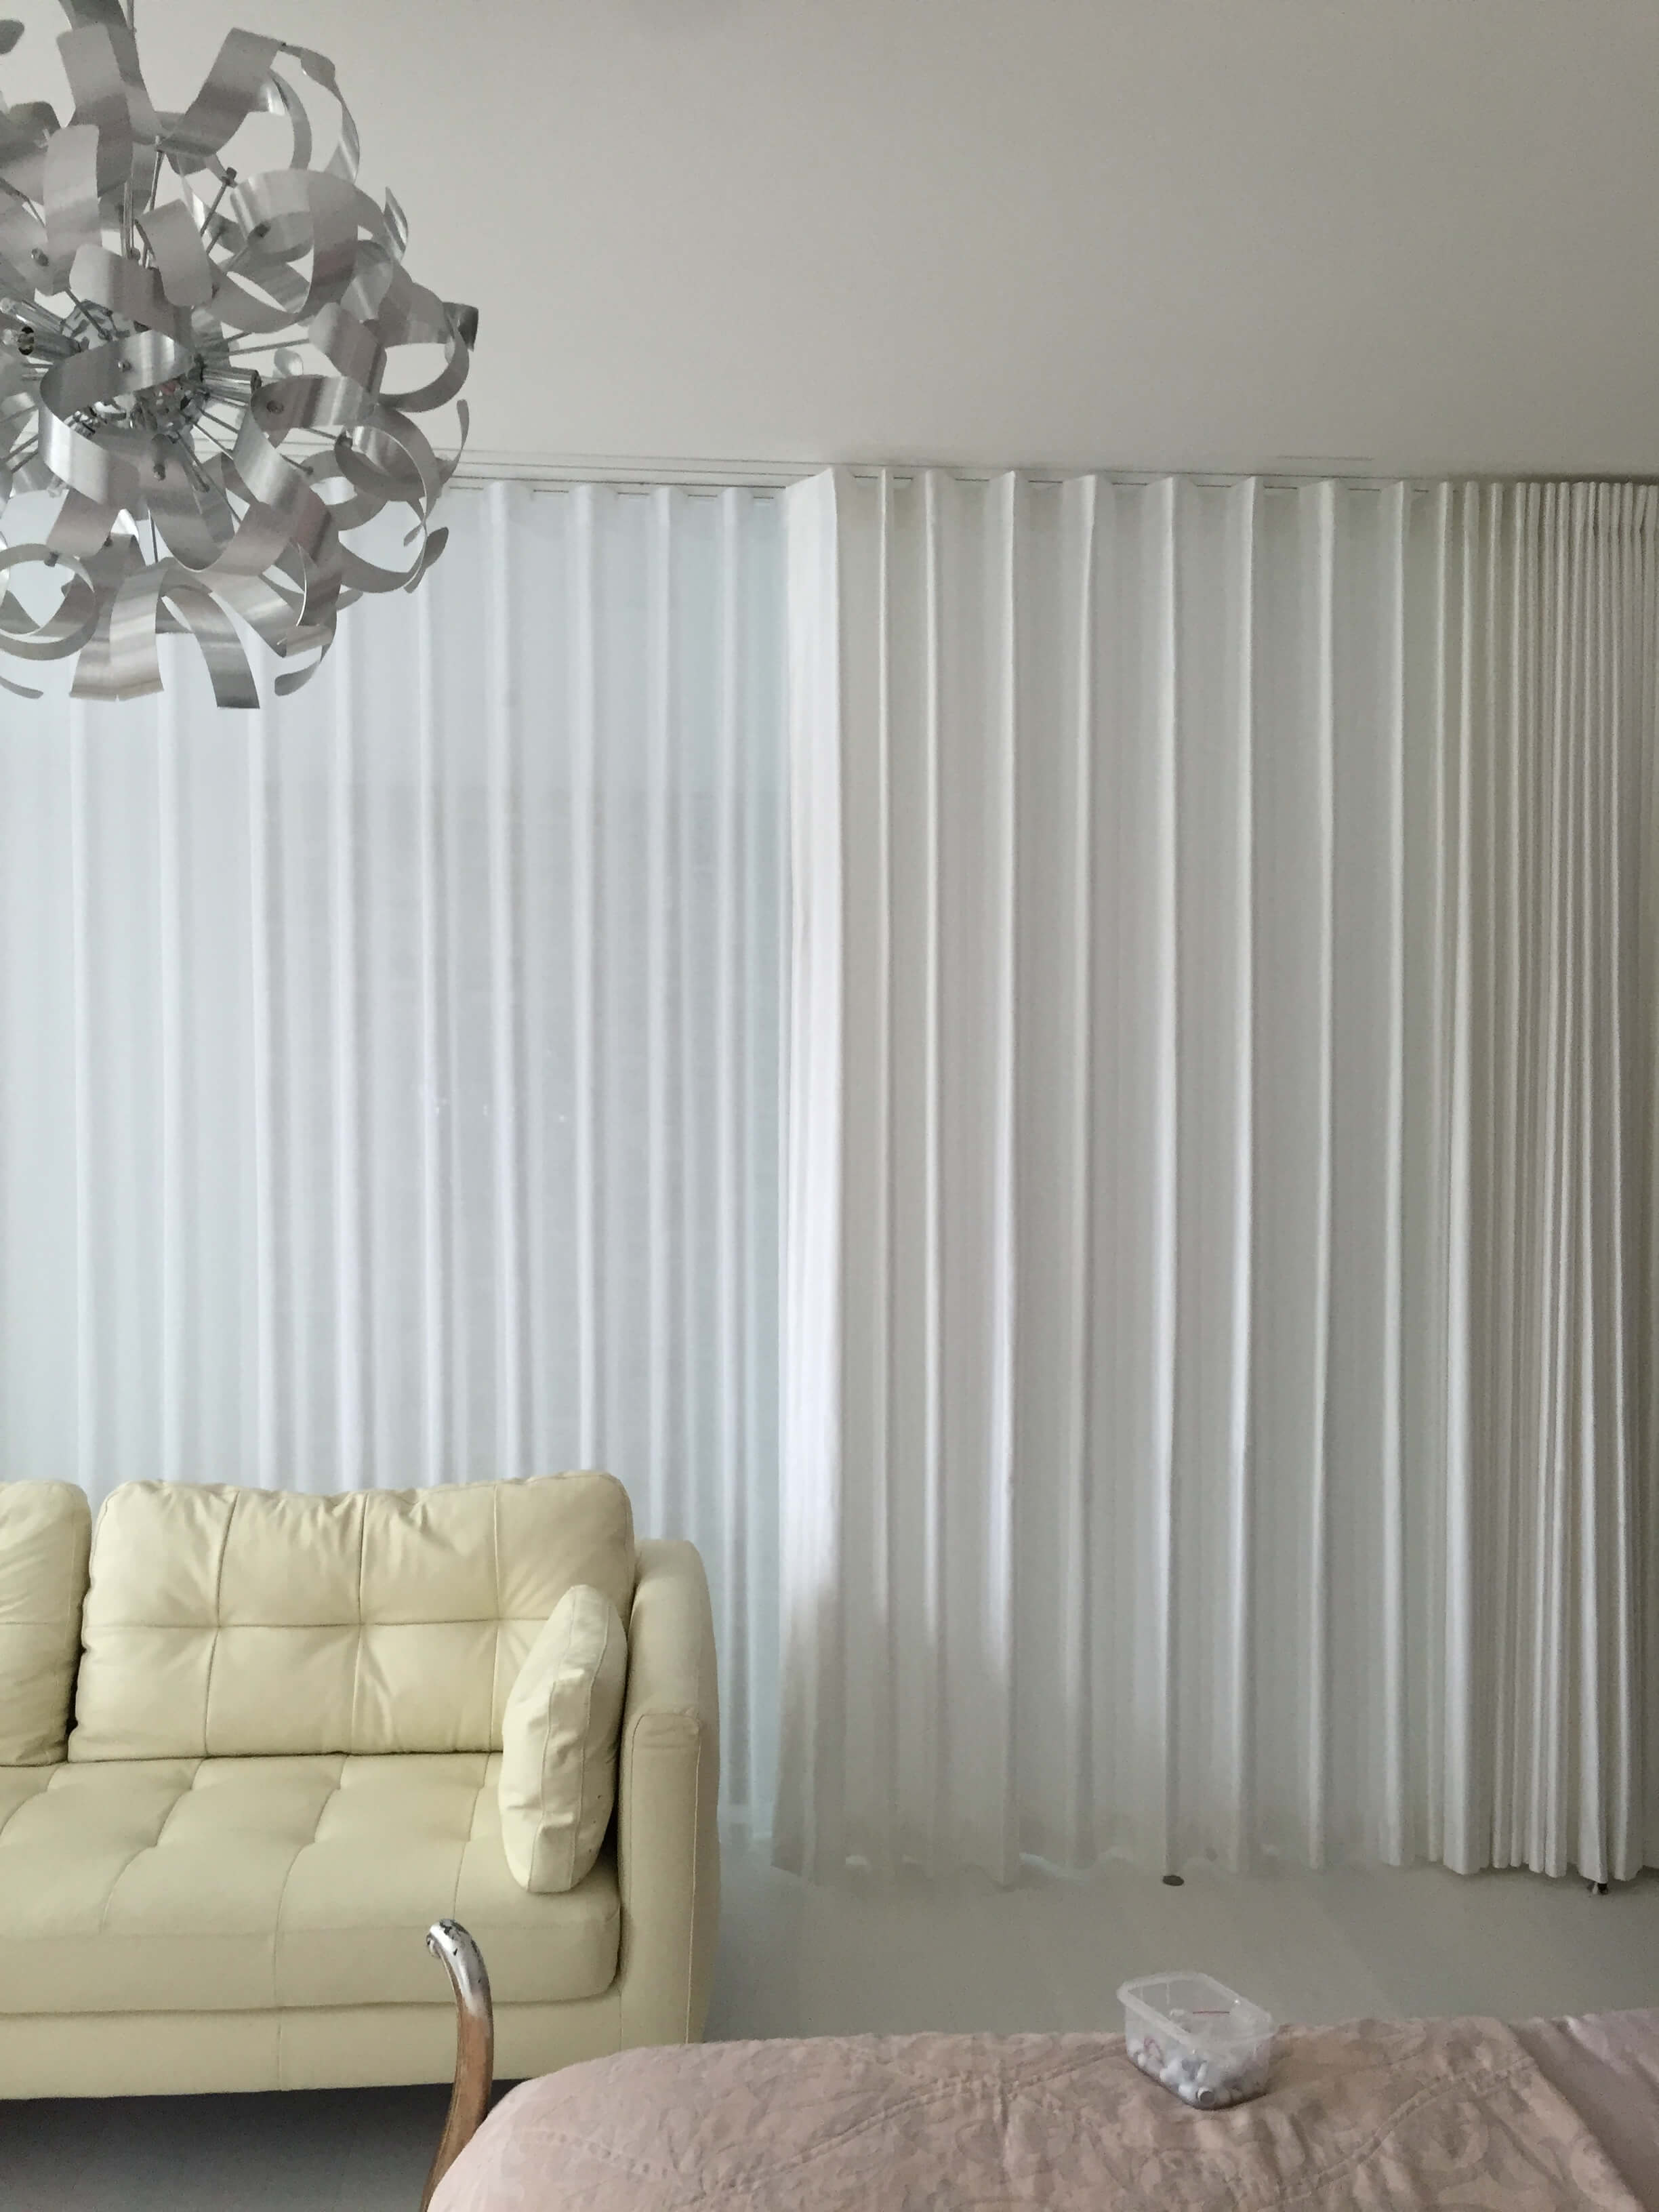 White sheer wave curtains